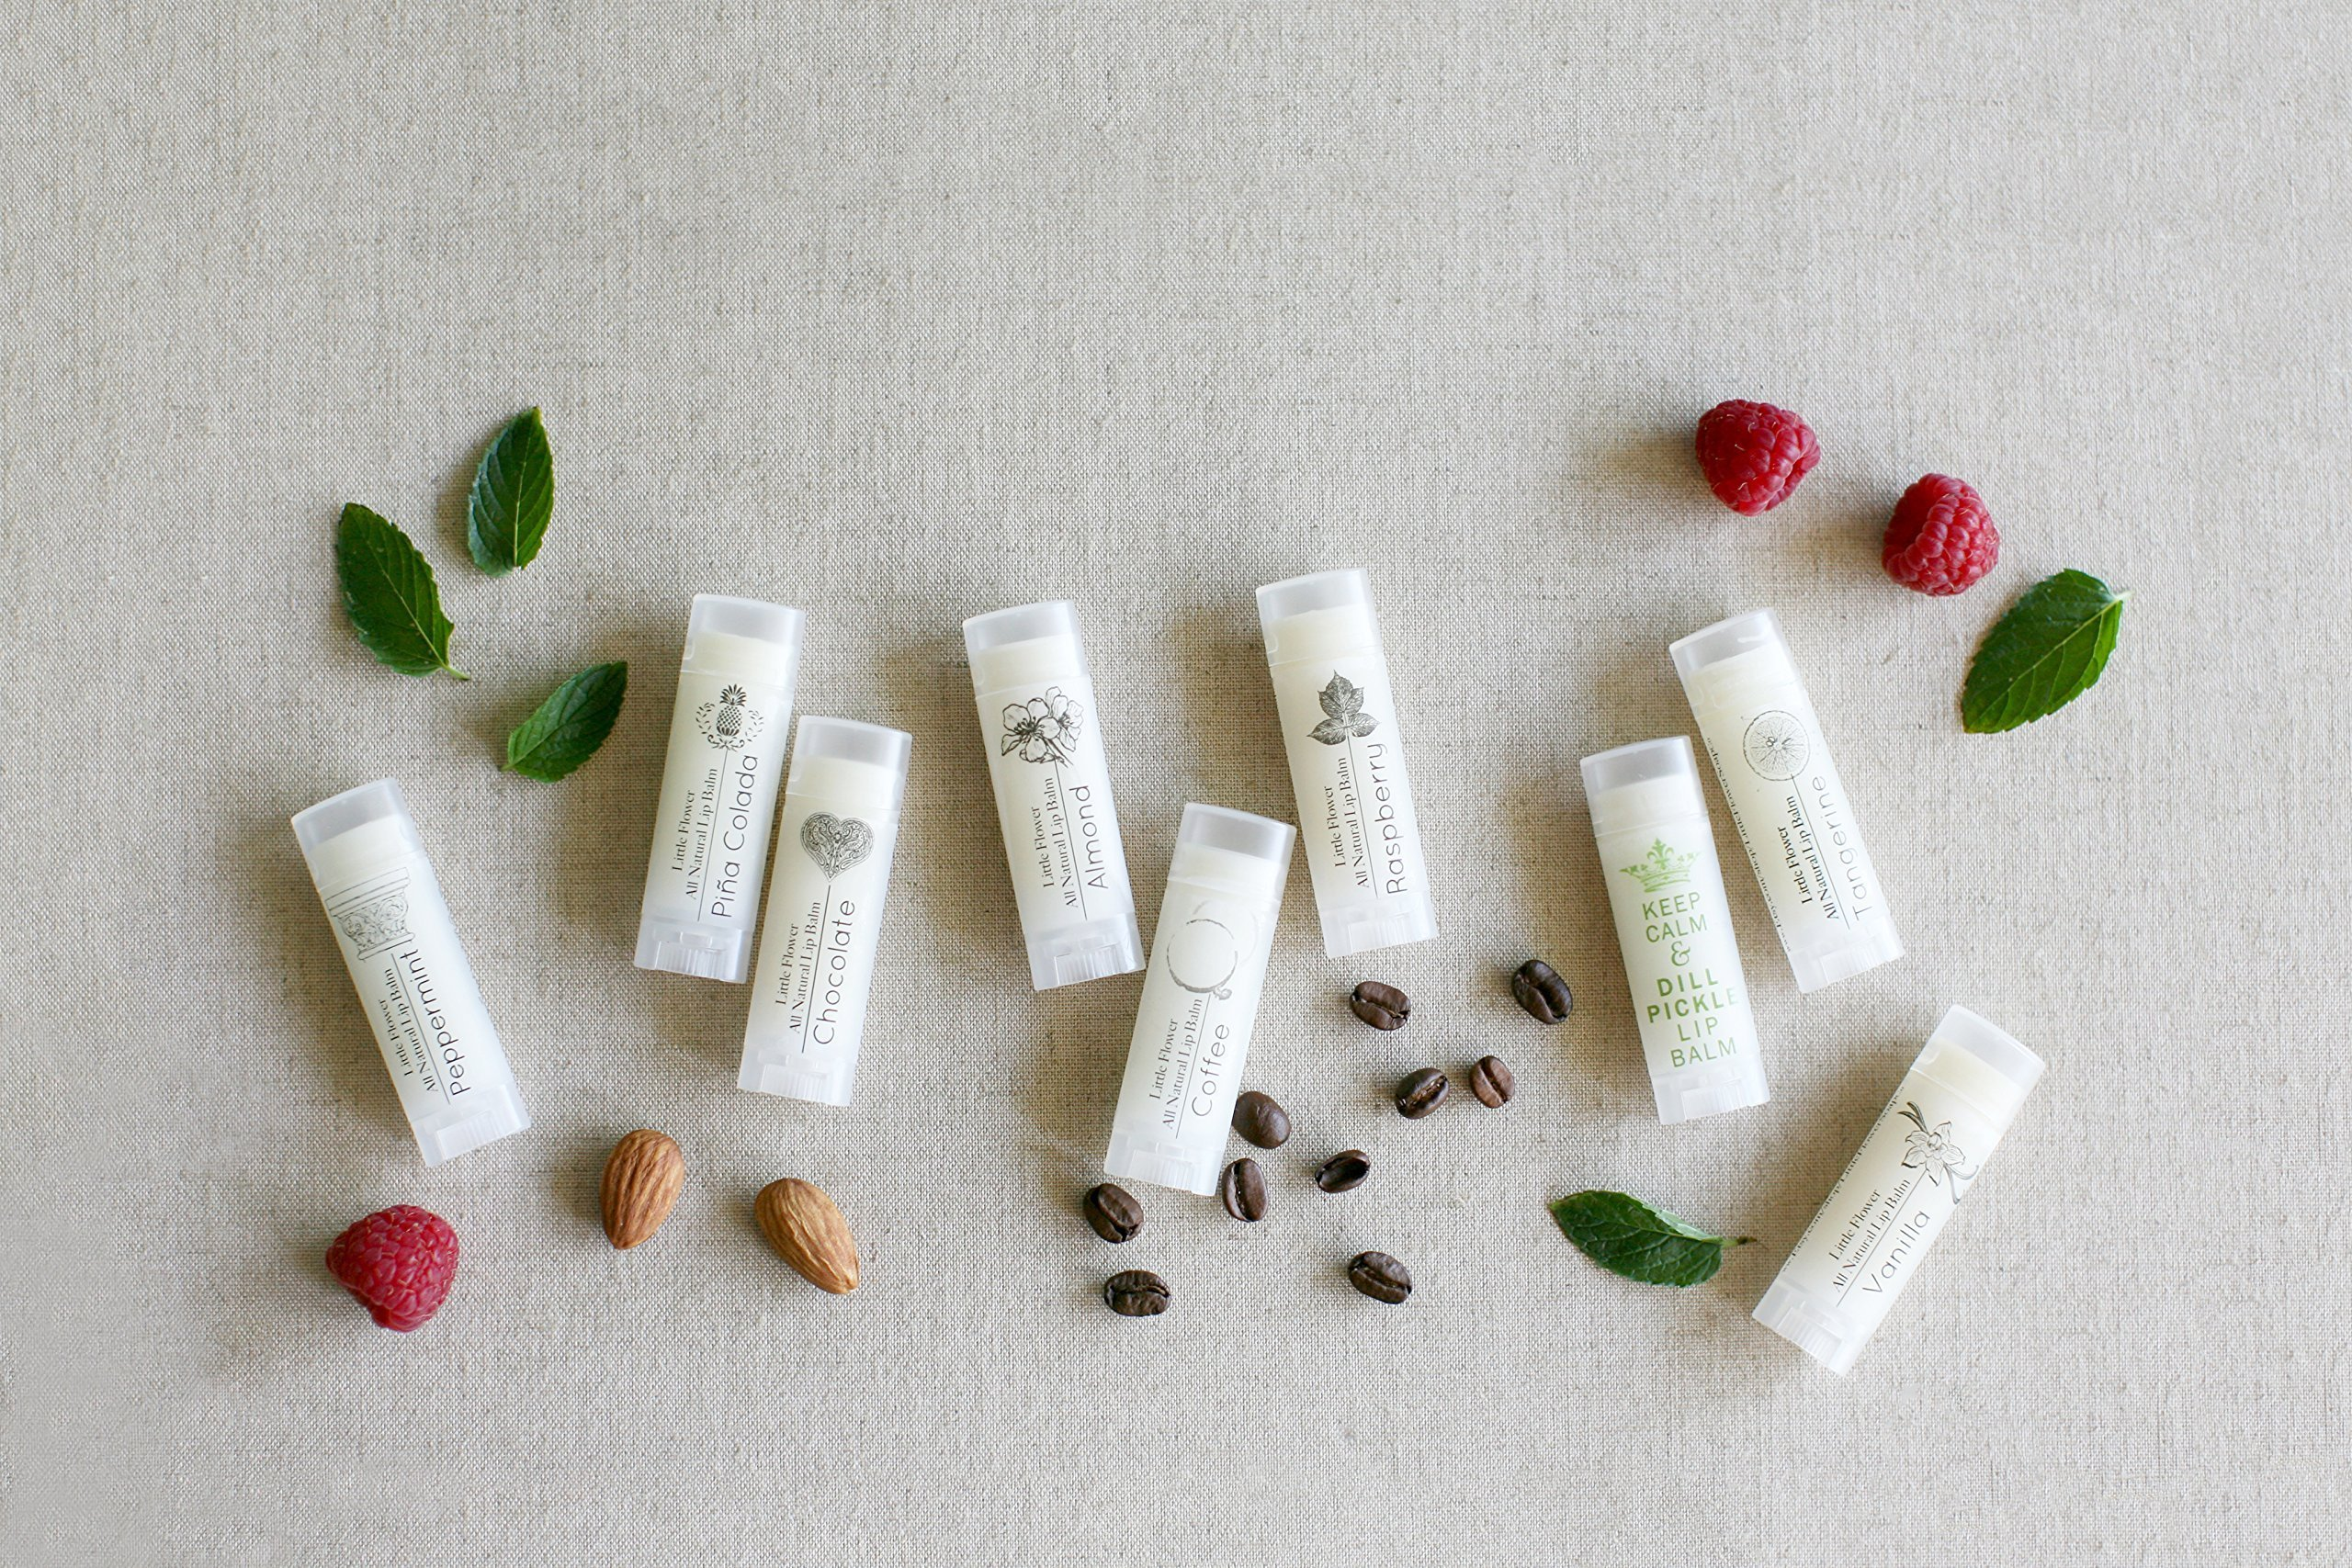 Set of 3 Handmade Natural Lip Balms